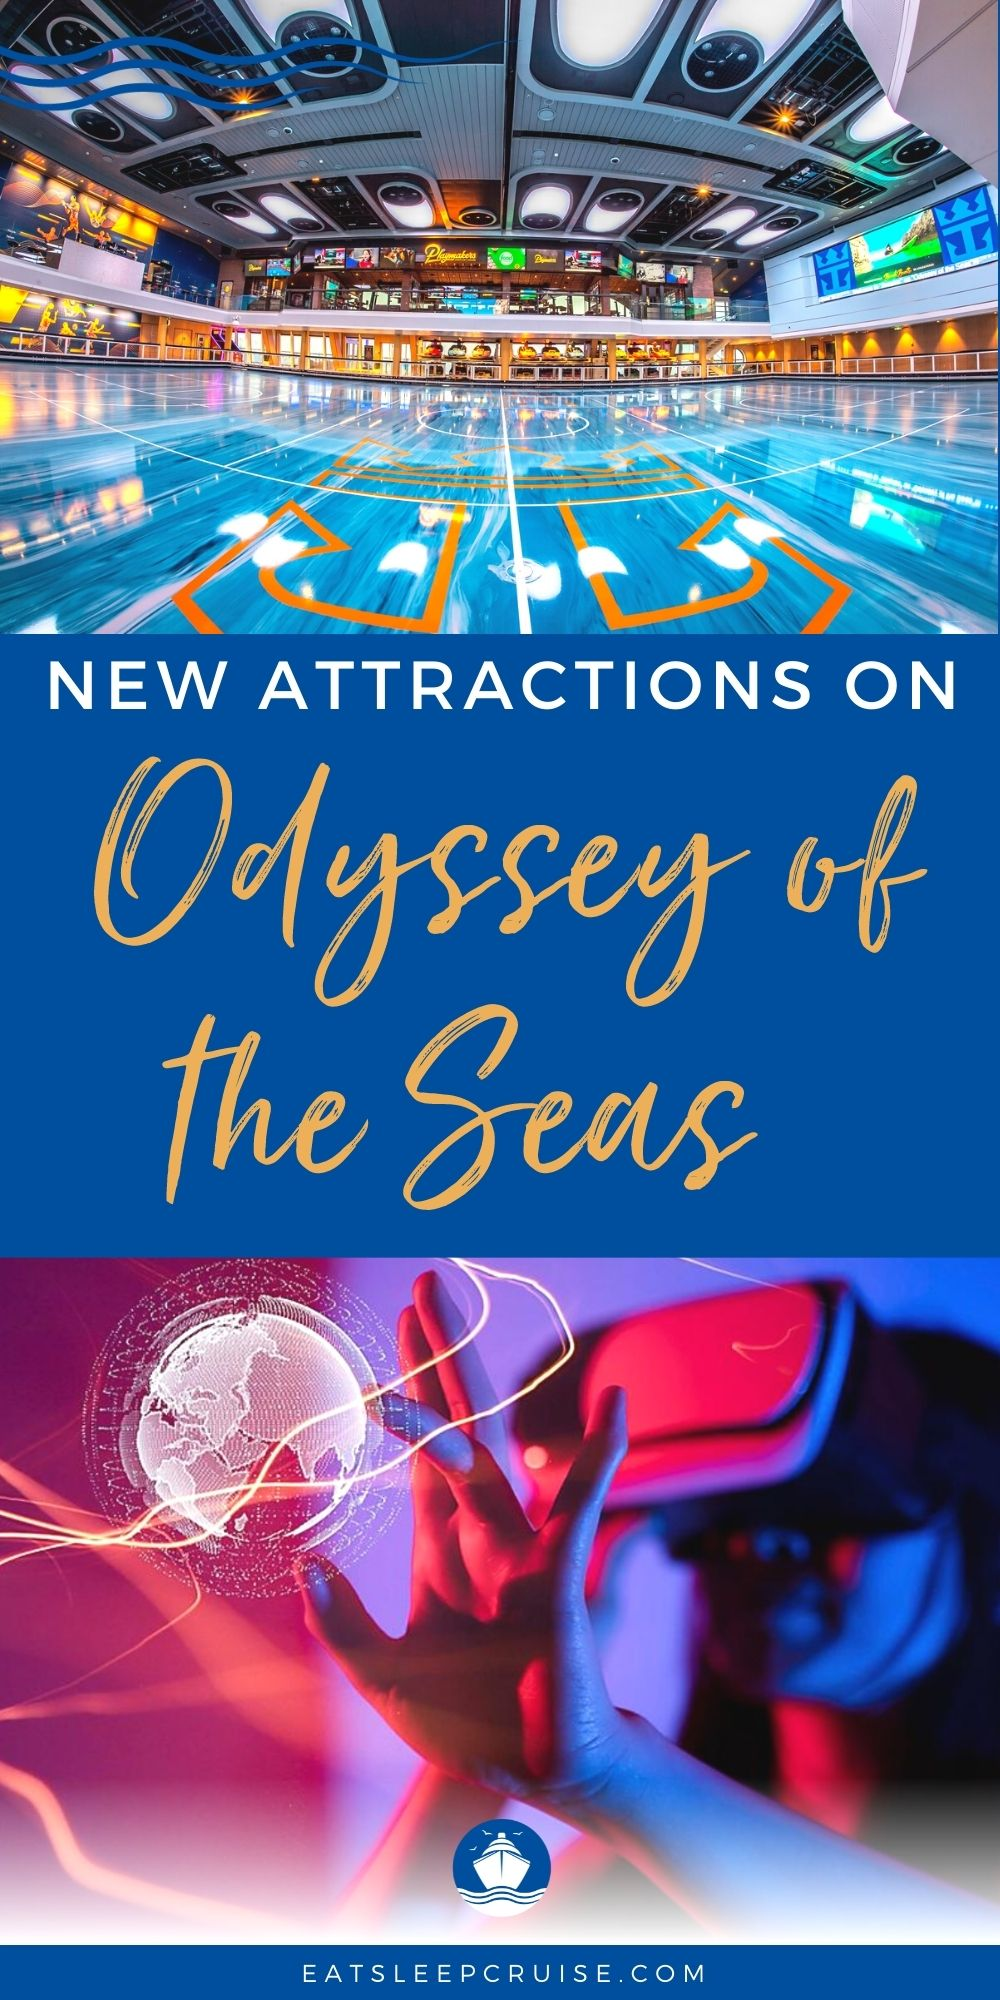 Virtual Reality Attraction Coming to Odyssey of the Seas